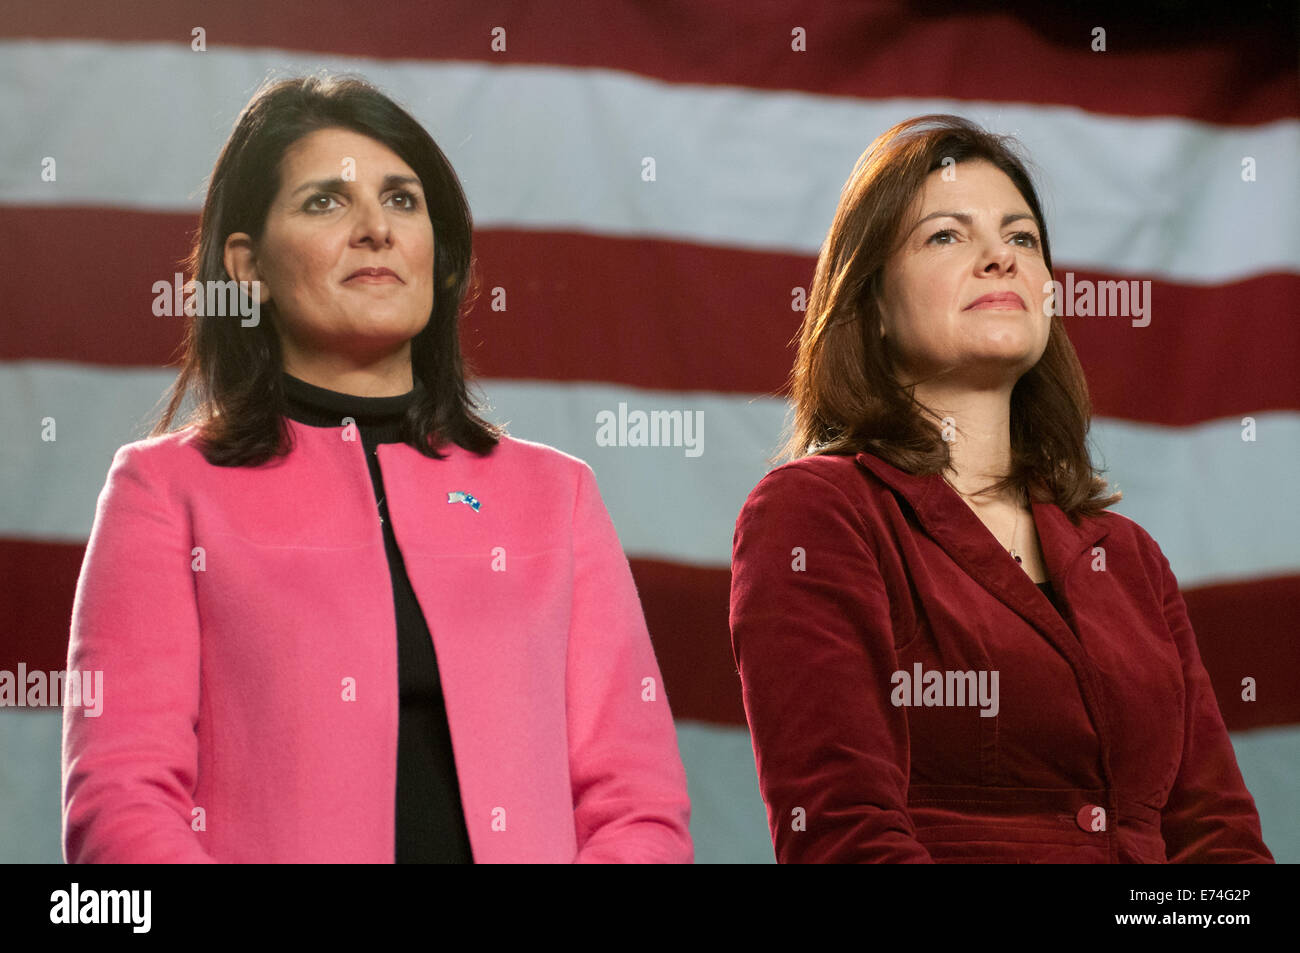 South Carolina governor Nikki Haley and Senator Kelly Ayotte of New Hampshire holds a campaign rally with Mitt Romney - Stock Image